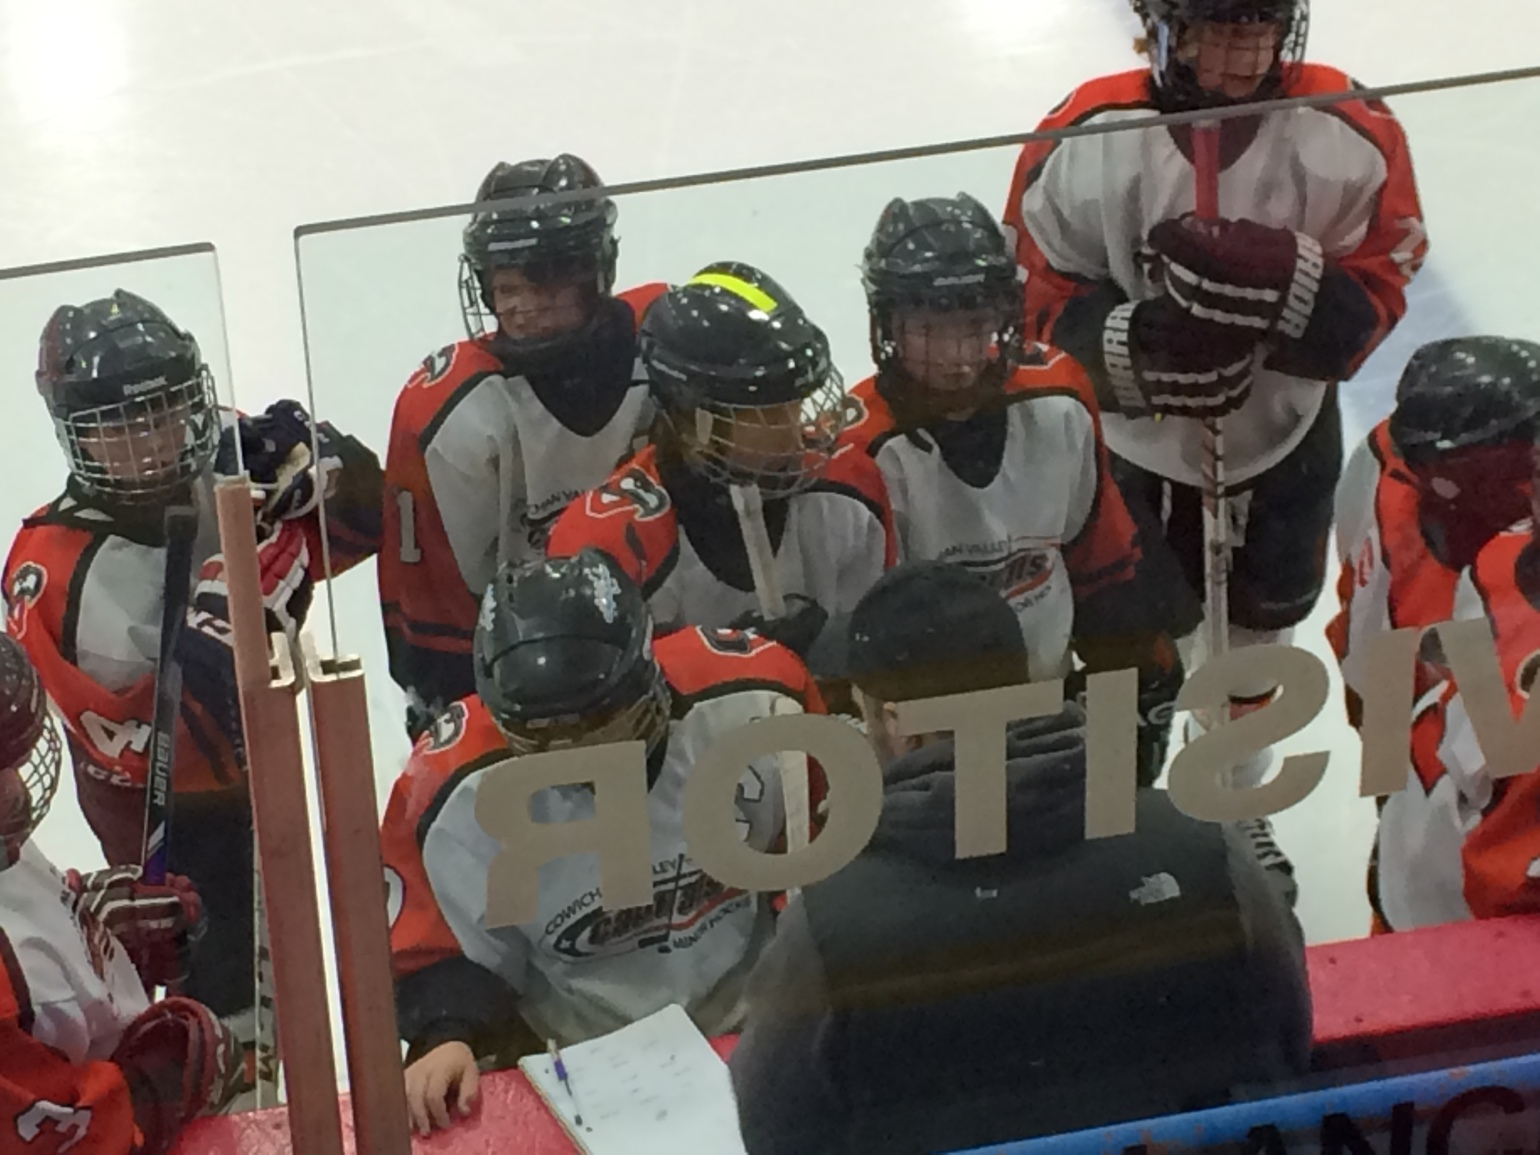 young hockey players wearing white and orange jerseys and black helmets. One player in the middle has a lime green stripe on the top of his helmet. They are gathered around the coach who is explaining what to do next.